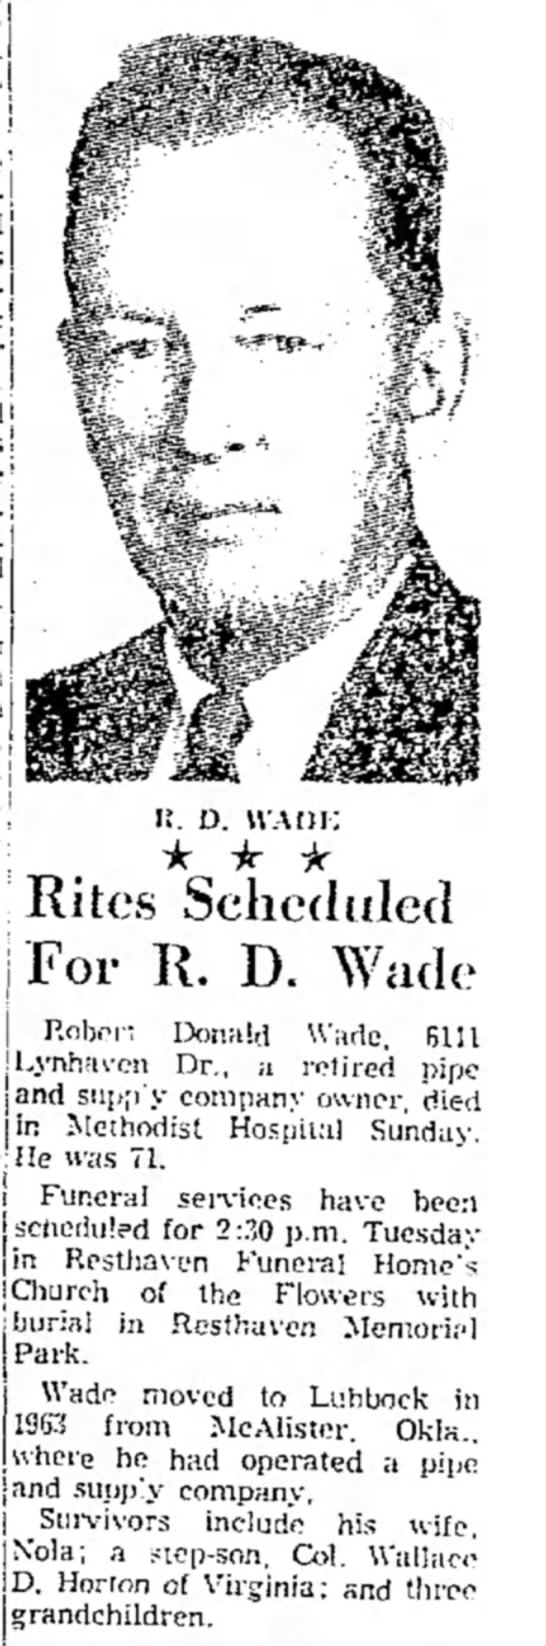 - I ; K. D. WAHI-; Rites Scheduled For R. D. Wade...